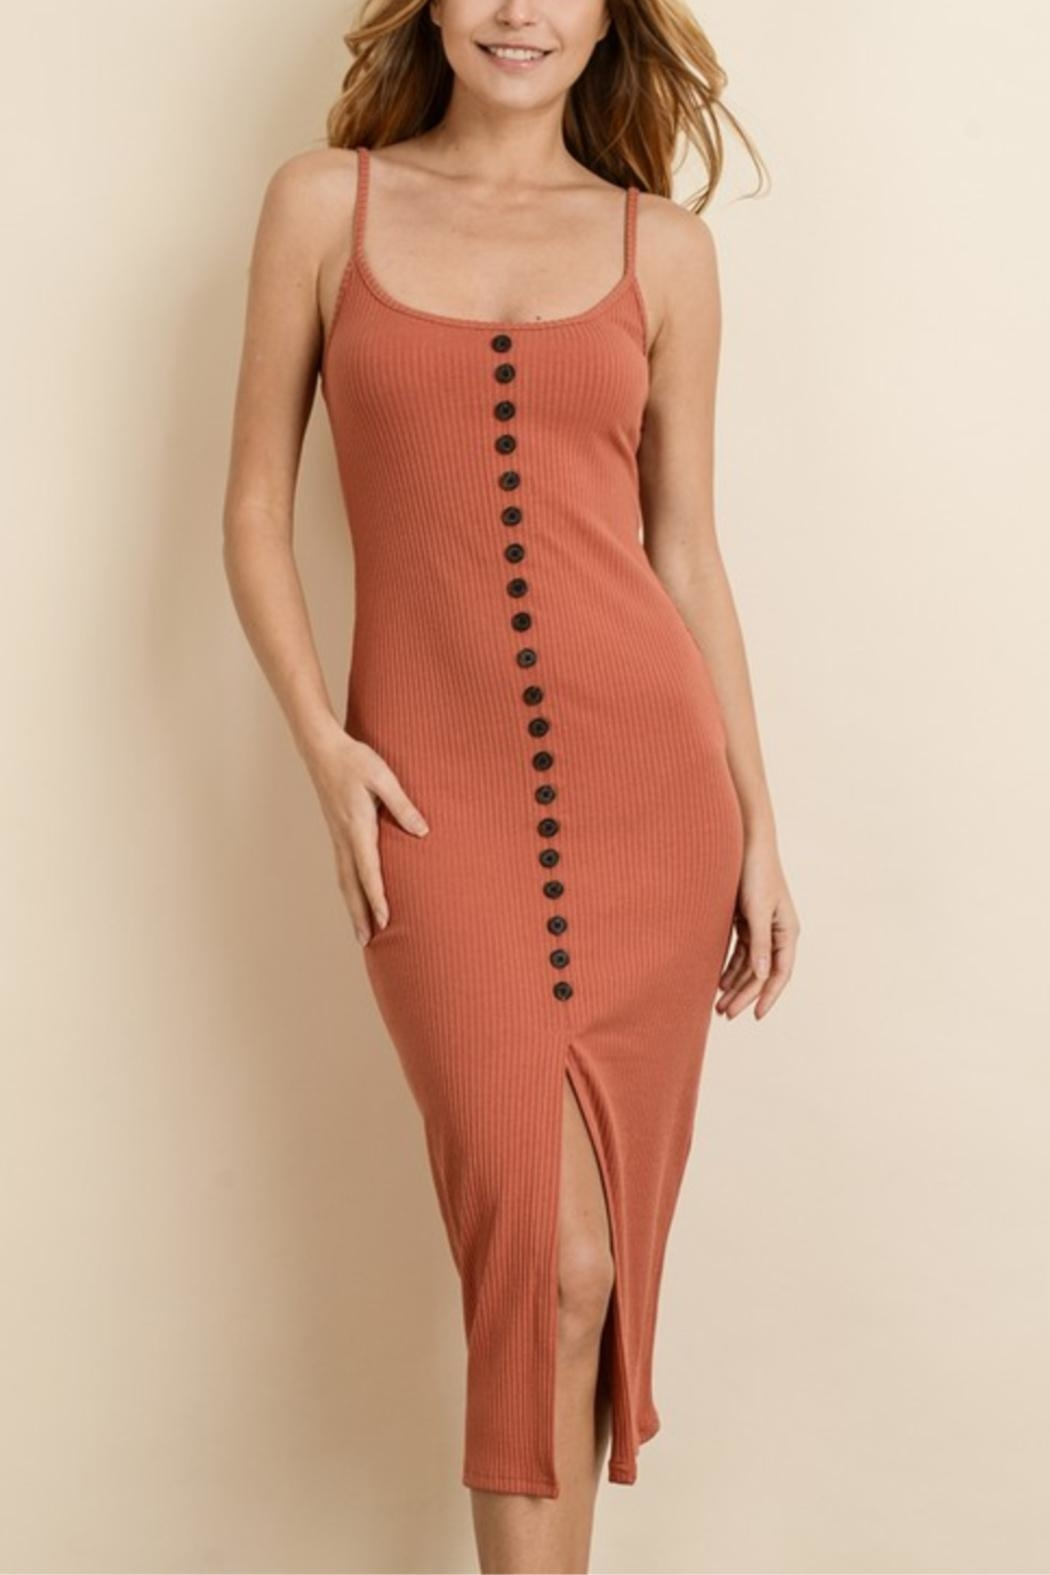 dress forum Ribbed Button Midi-Dress - Main Image